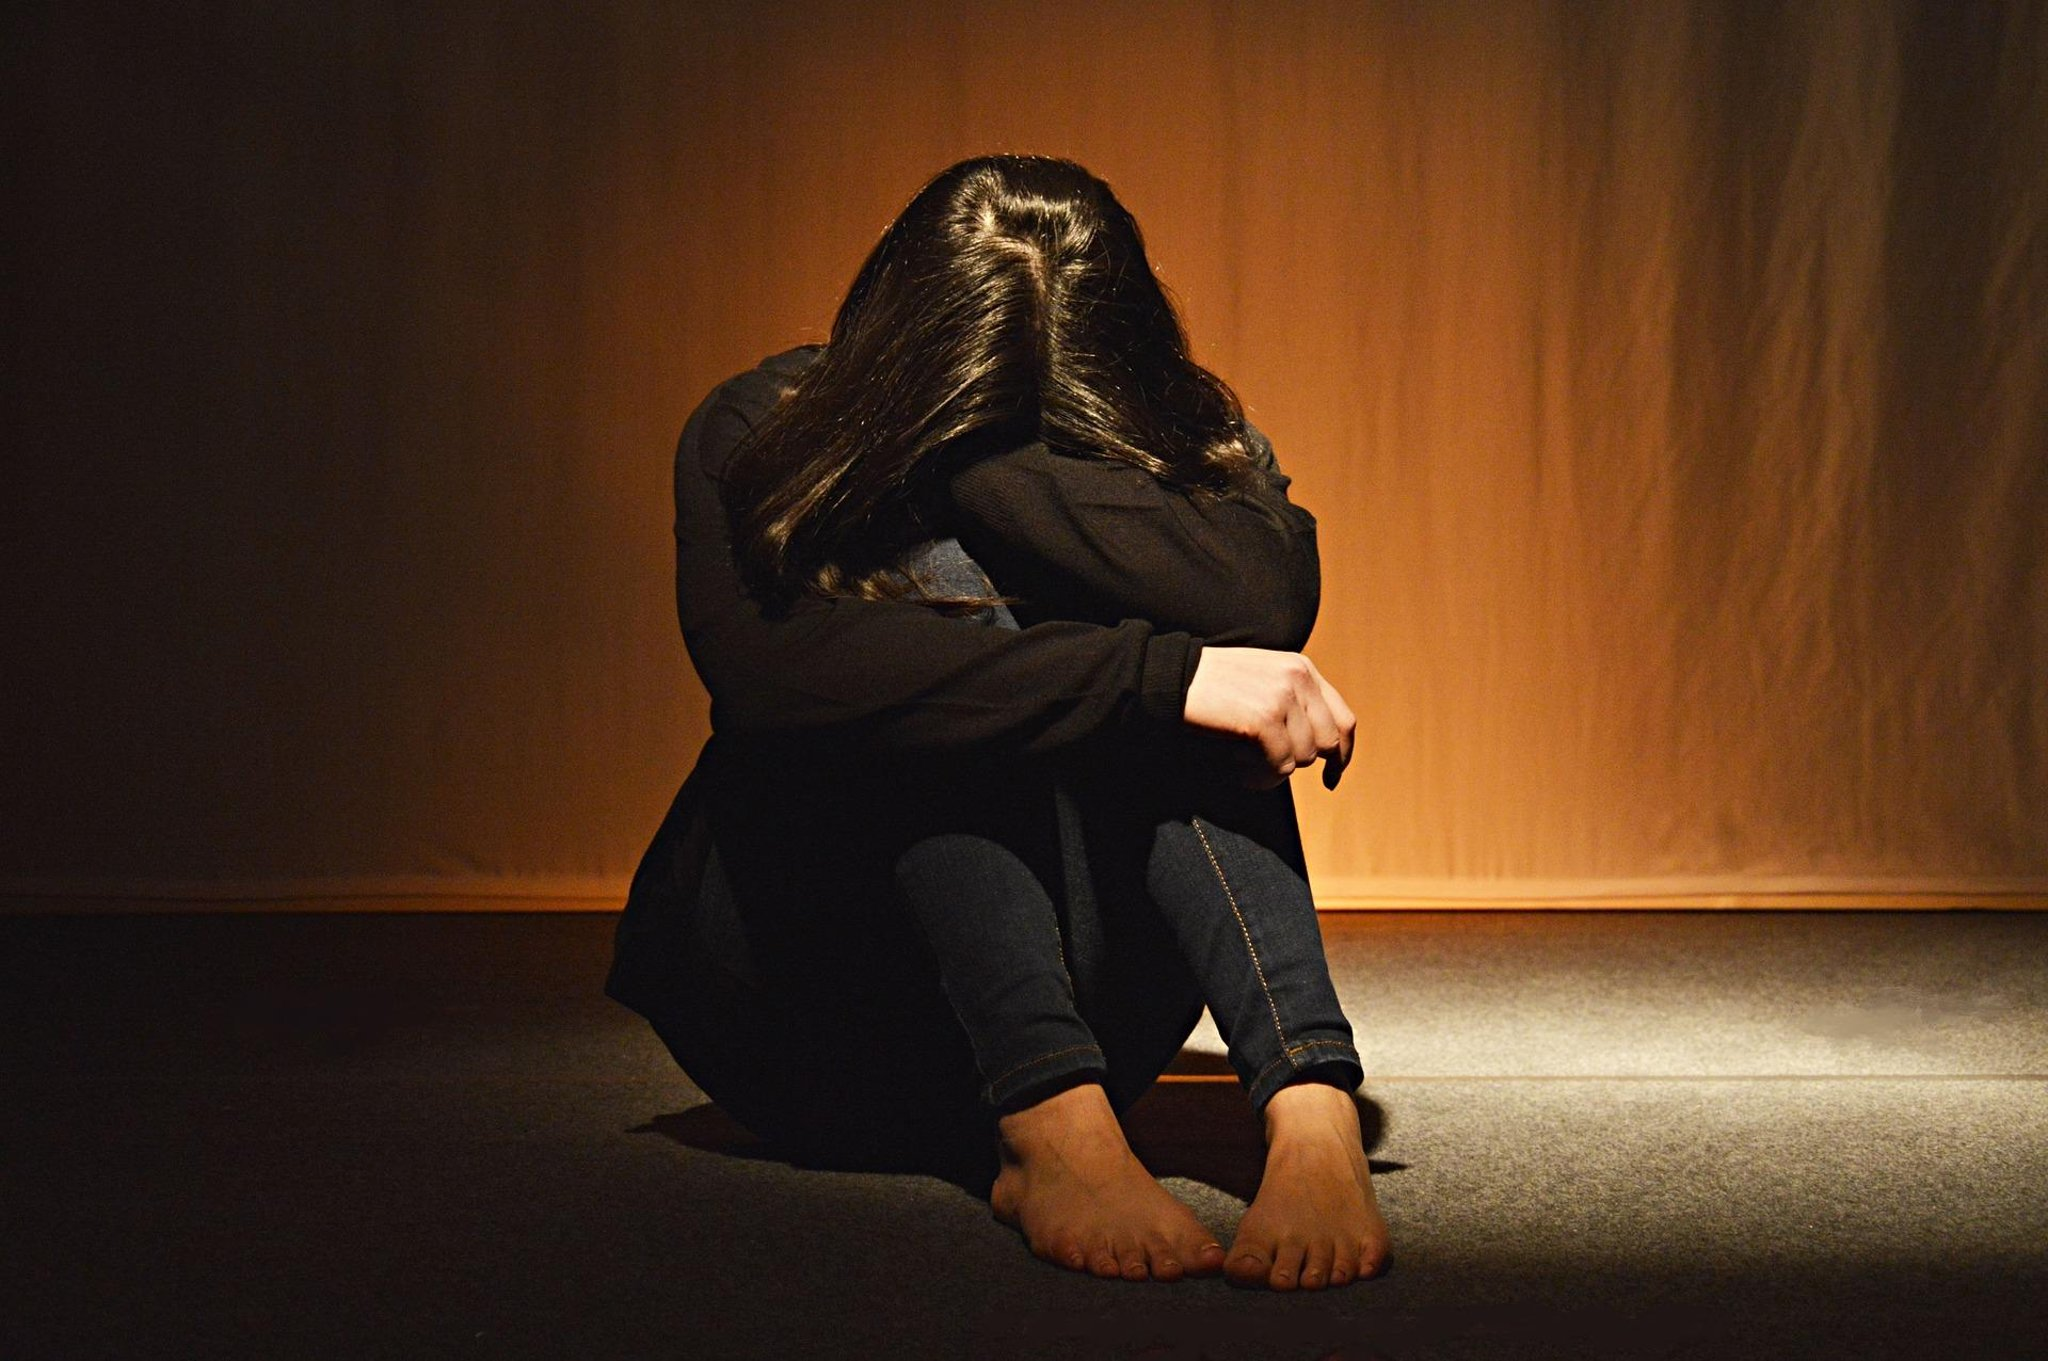 Heartbreaking stories of desperate women who have turned